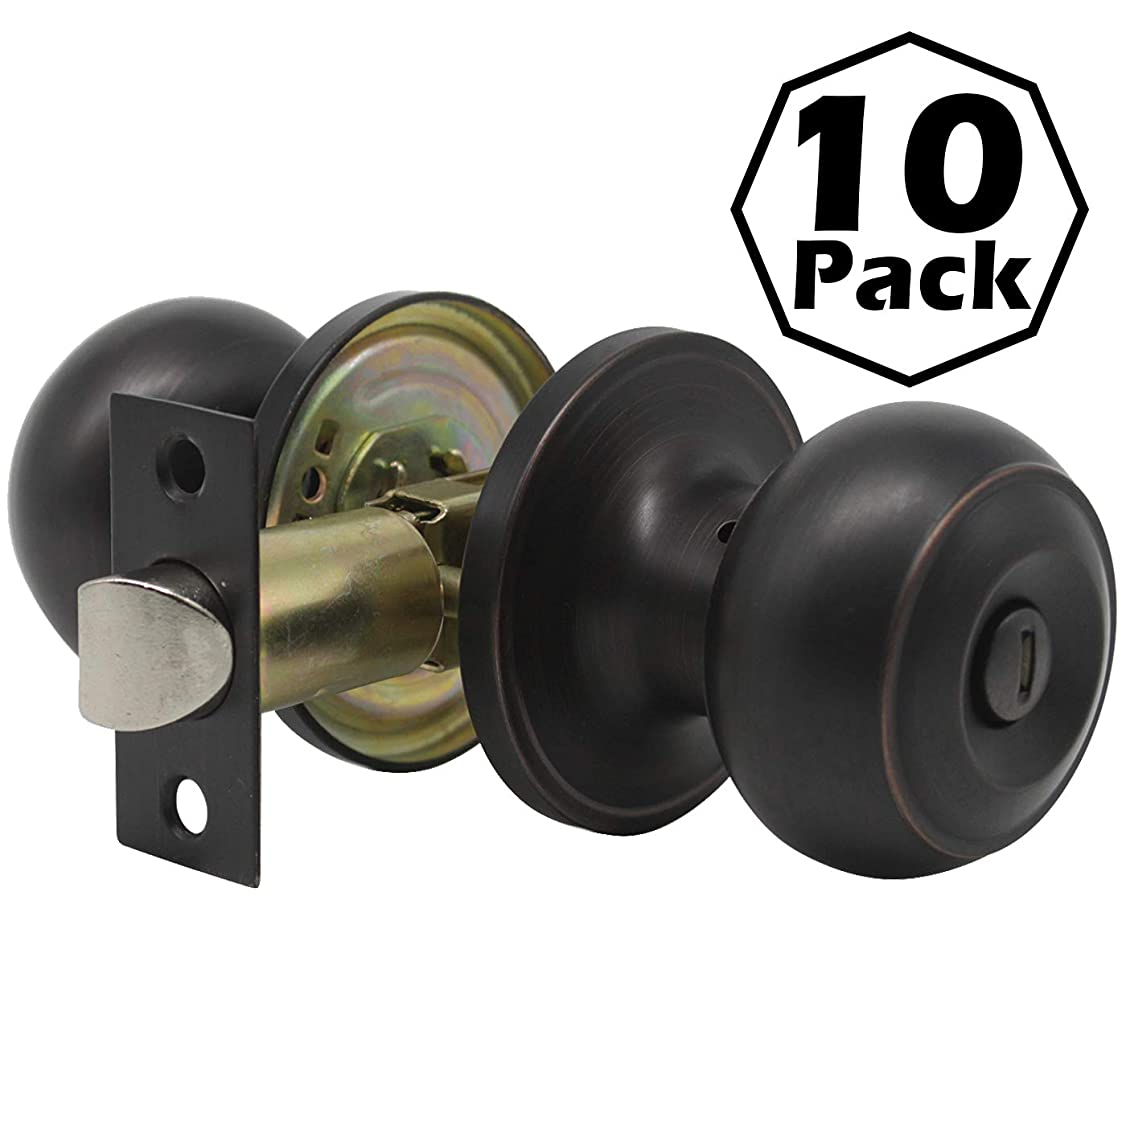 Gobrico Round Ball Style Door Knob Keyless Privacy Bedroom and Bathroom Handle Lockset Oil Rubbed Bronze Finish 10Pack